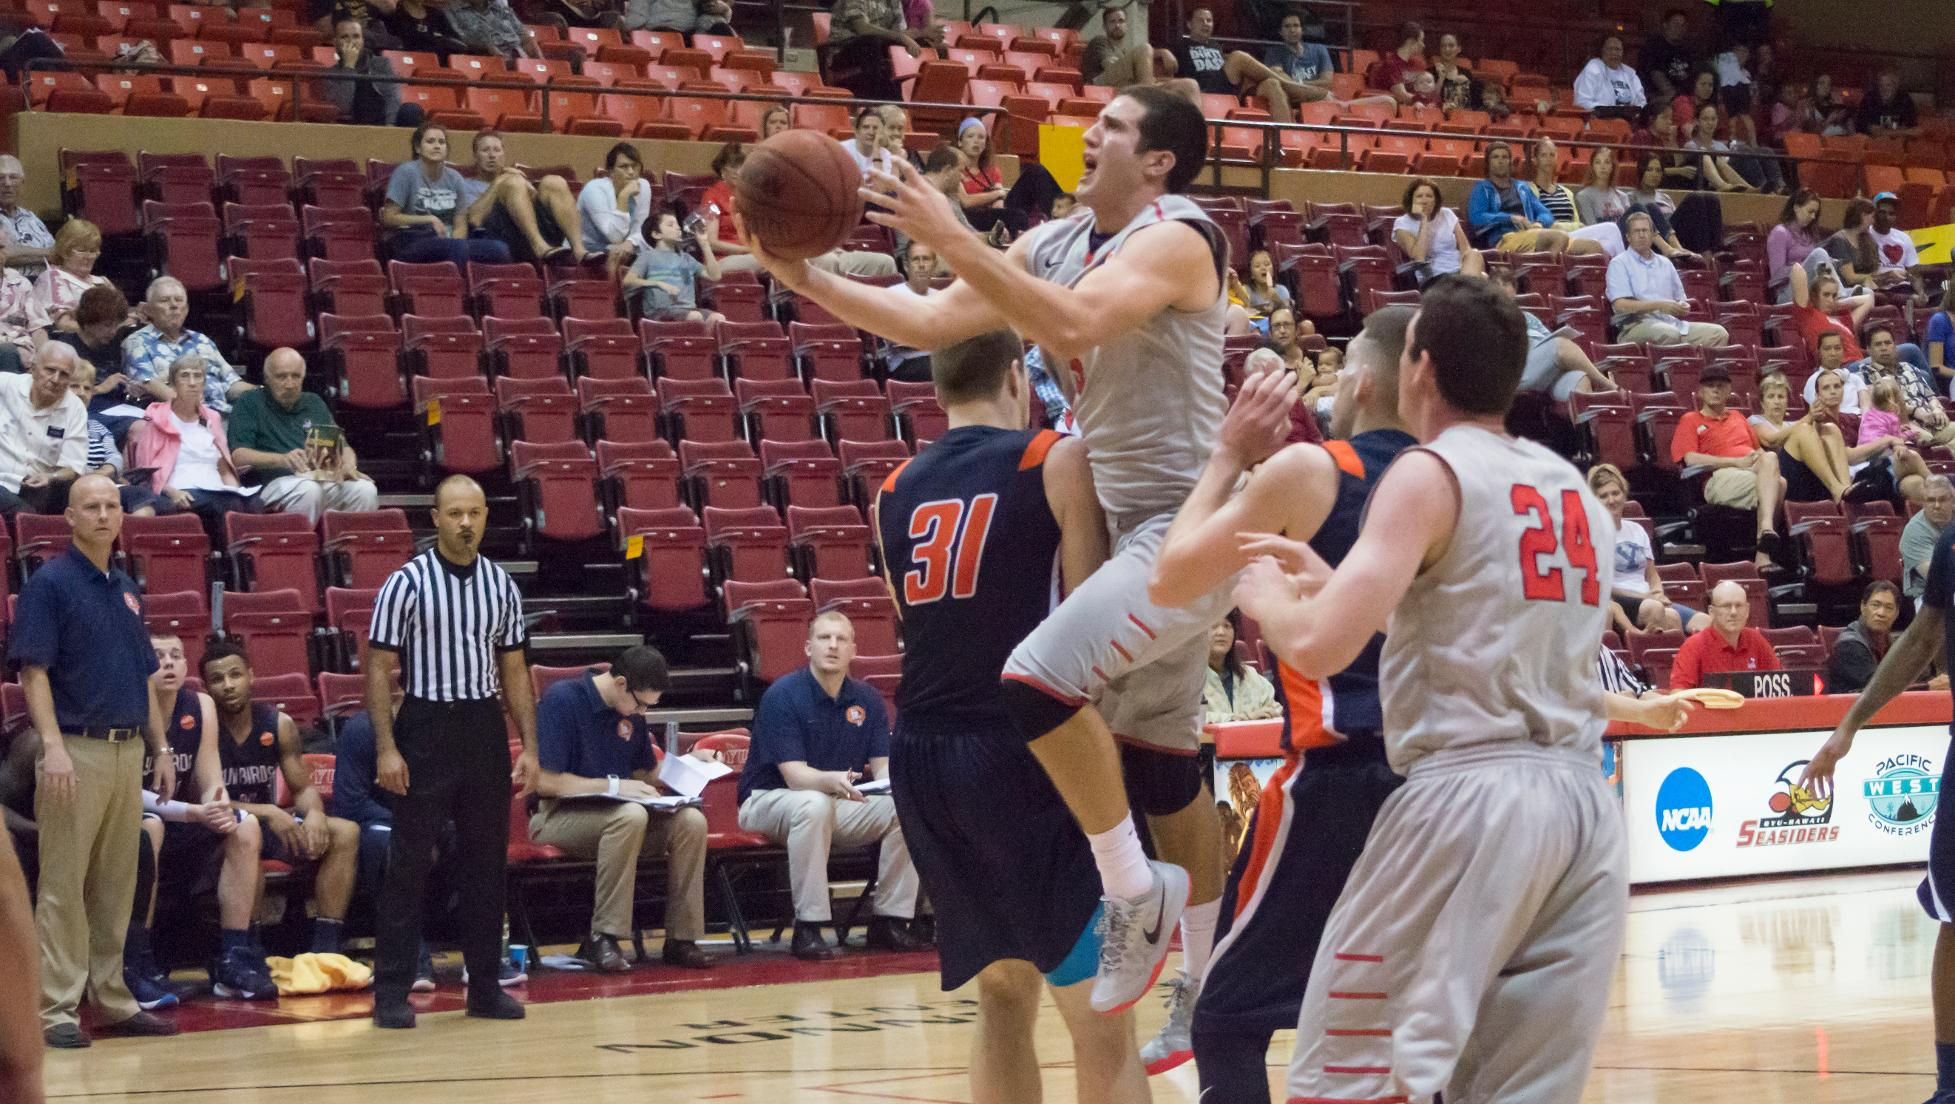 Seasiders unable to close out Lancers in second half